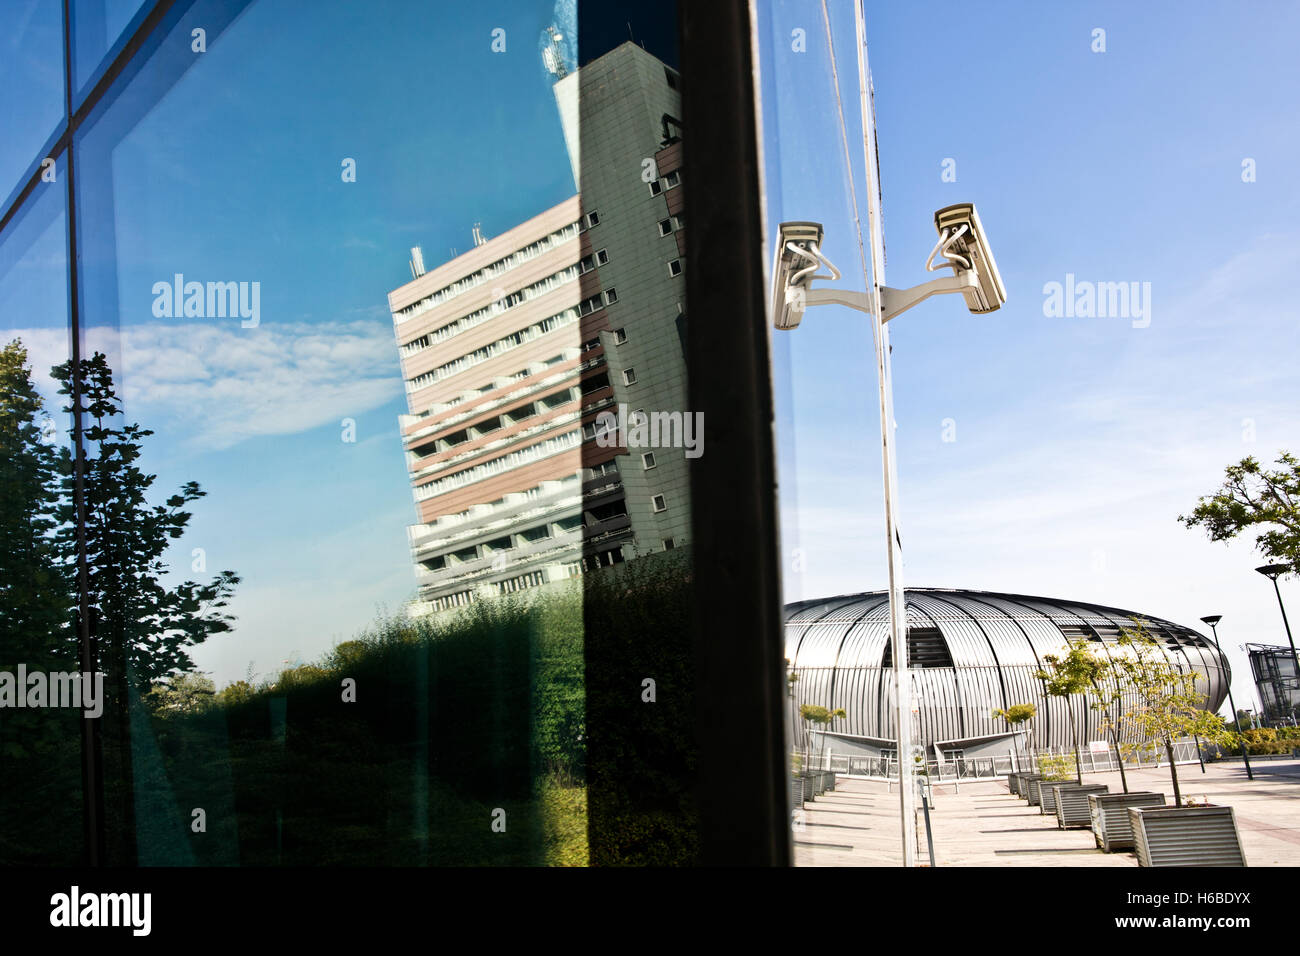 Reflection of modern building with surveillance cameras - Stock Image